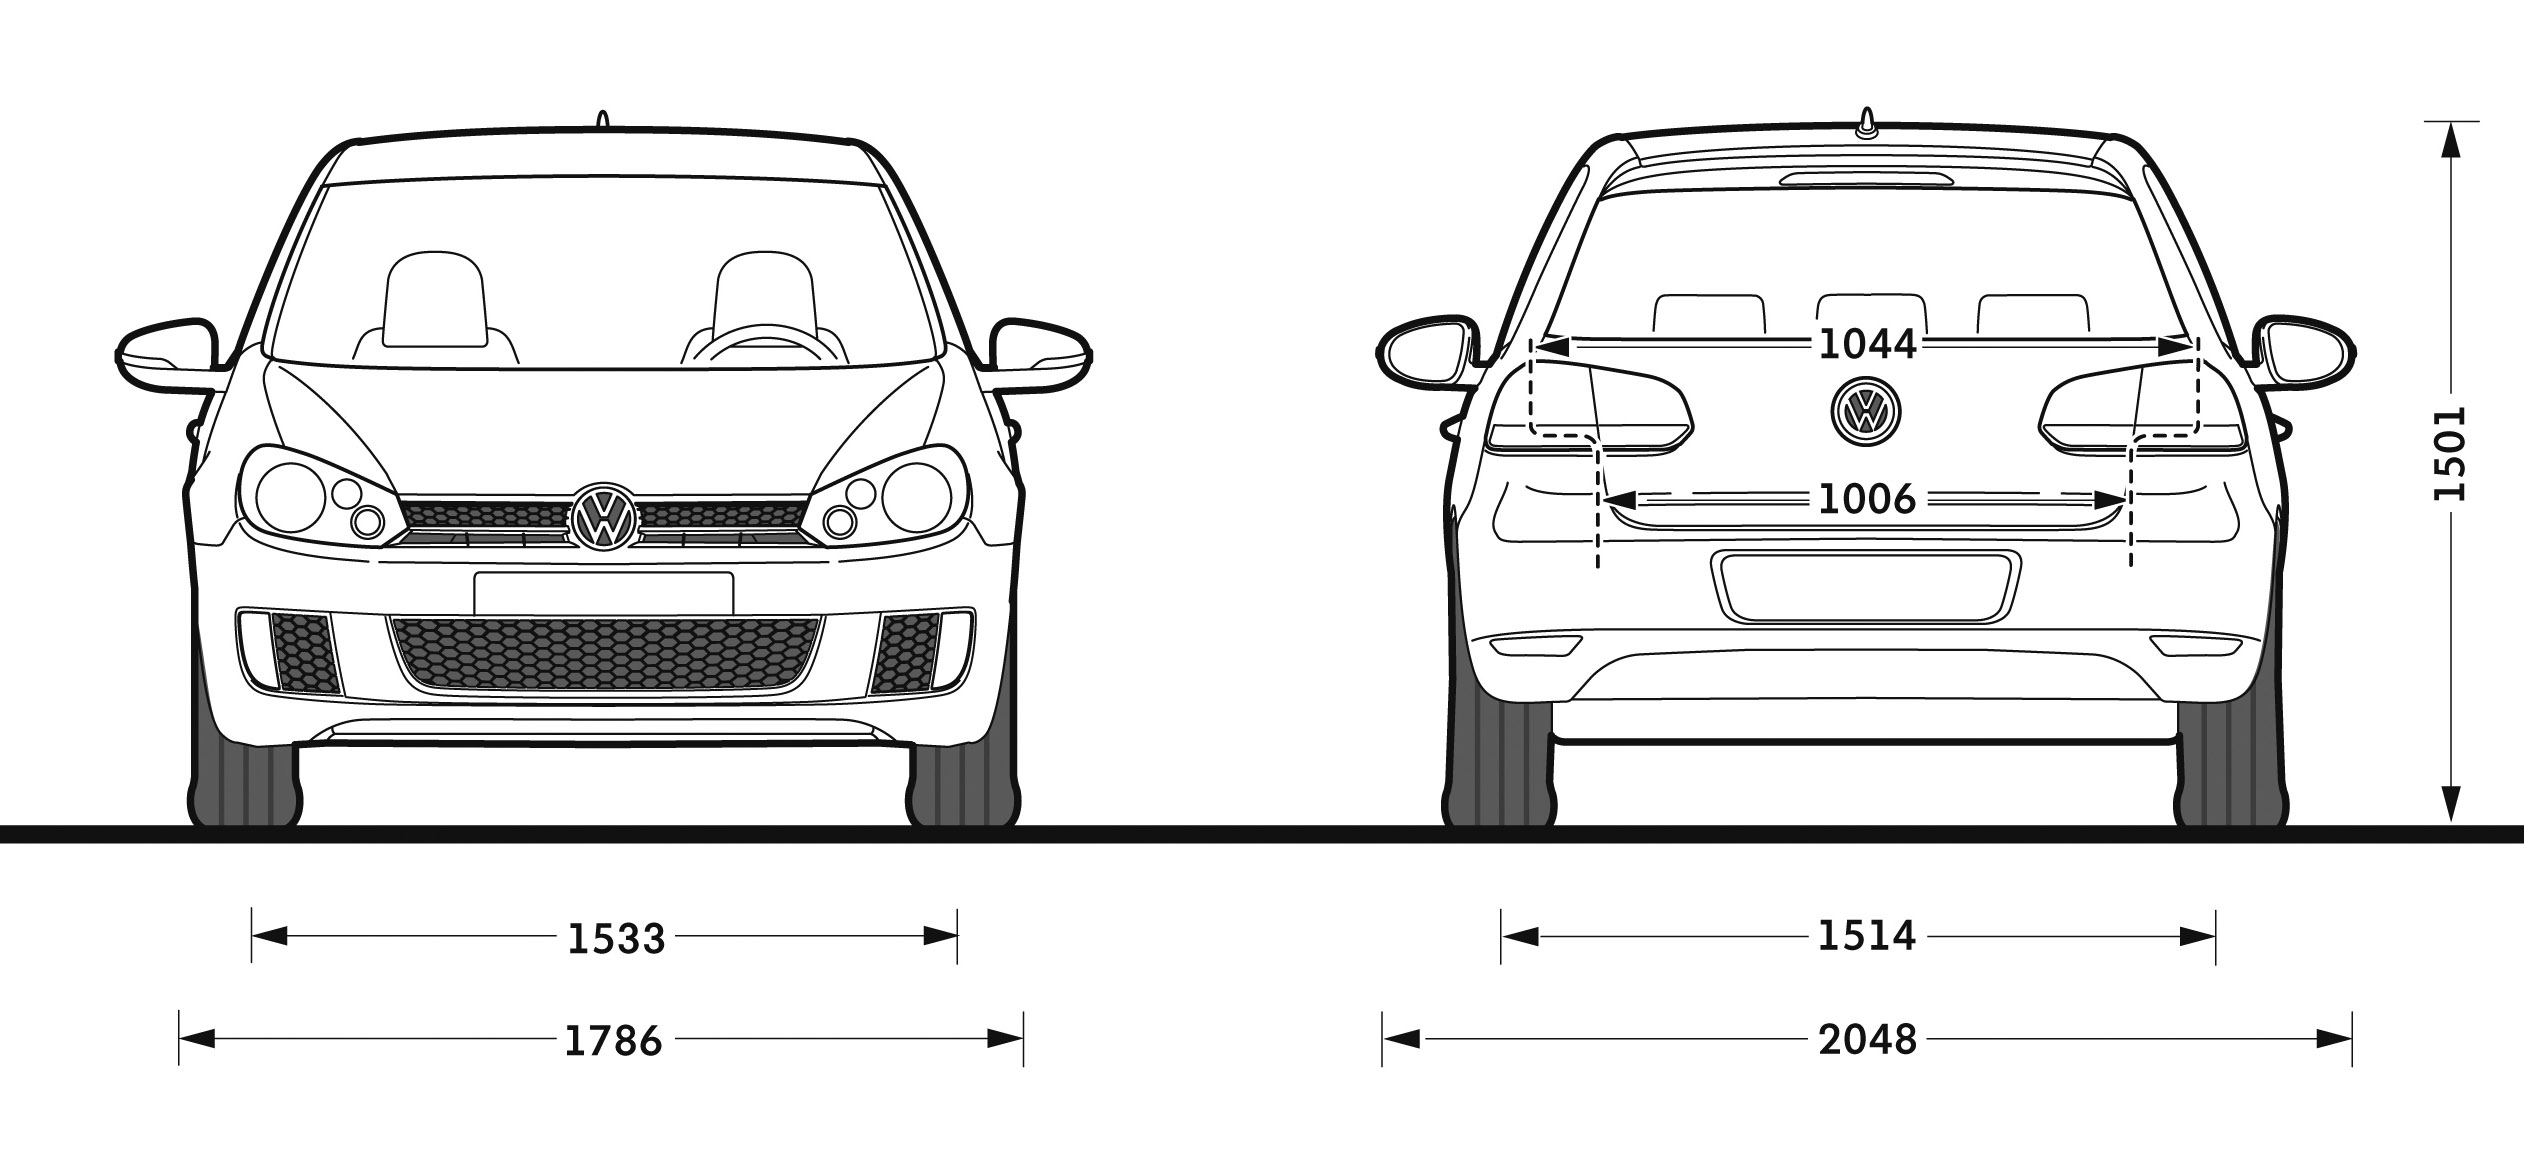 Most Loved Car Blueprints For 3d Modeling together with Car line art besides 434949276497218778 additionally 307581849534791678 likewise Blu sheet. on dimensions of smart fortwo